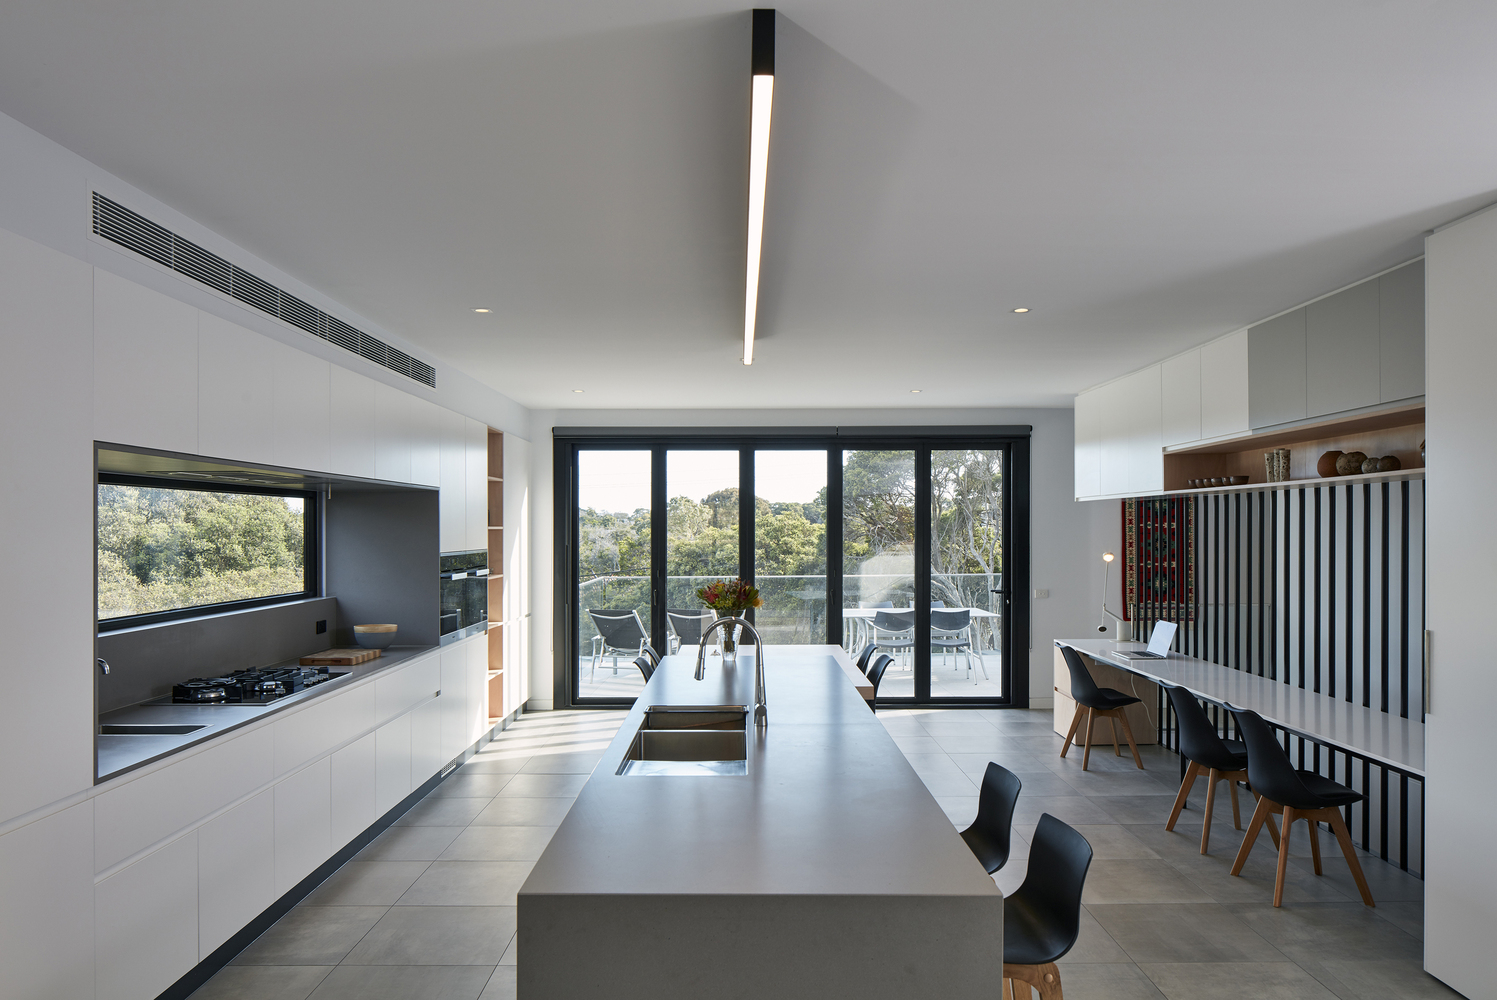 beach house by dx architects interior design archive beach home designs australia home design ideas